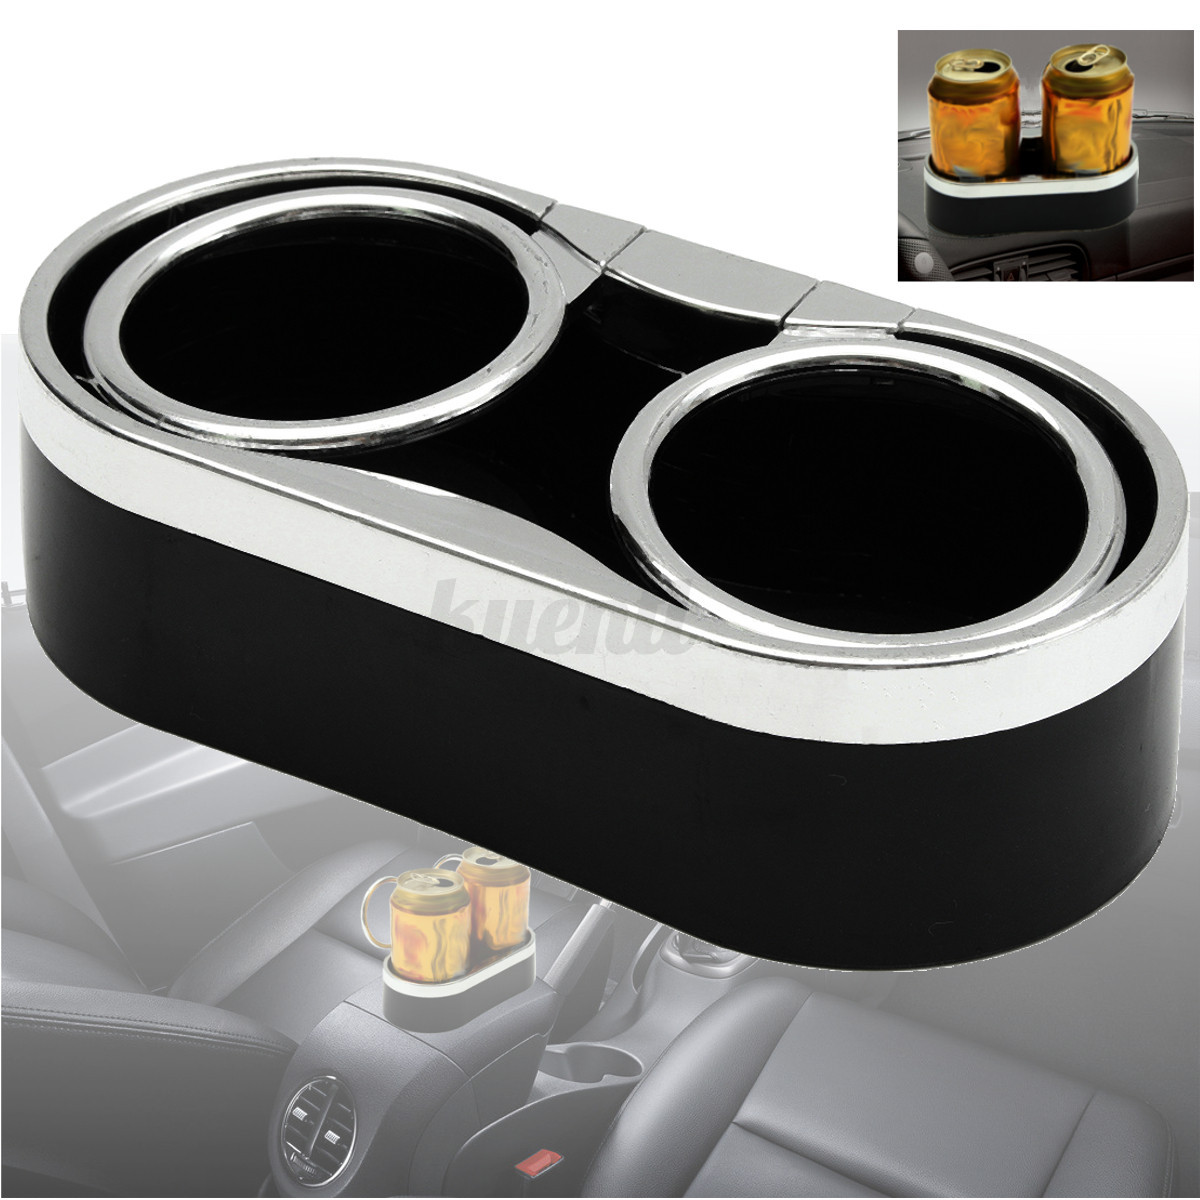 auto car truck adhesive mount dual cup holder drink bottle holder 2 top rings ebay. Black Bedroom Furniture Sets. Home Design Ideas